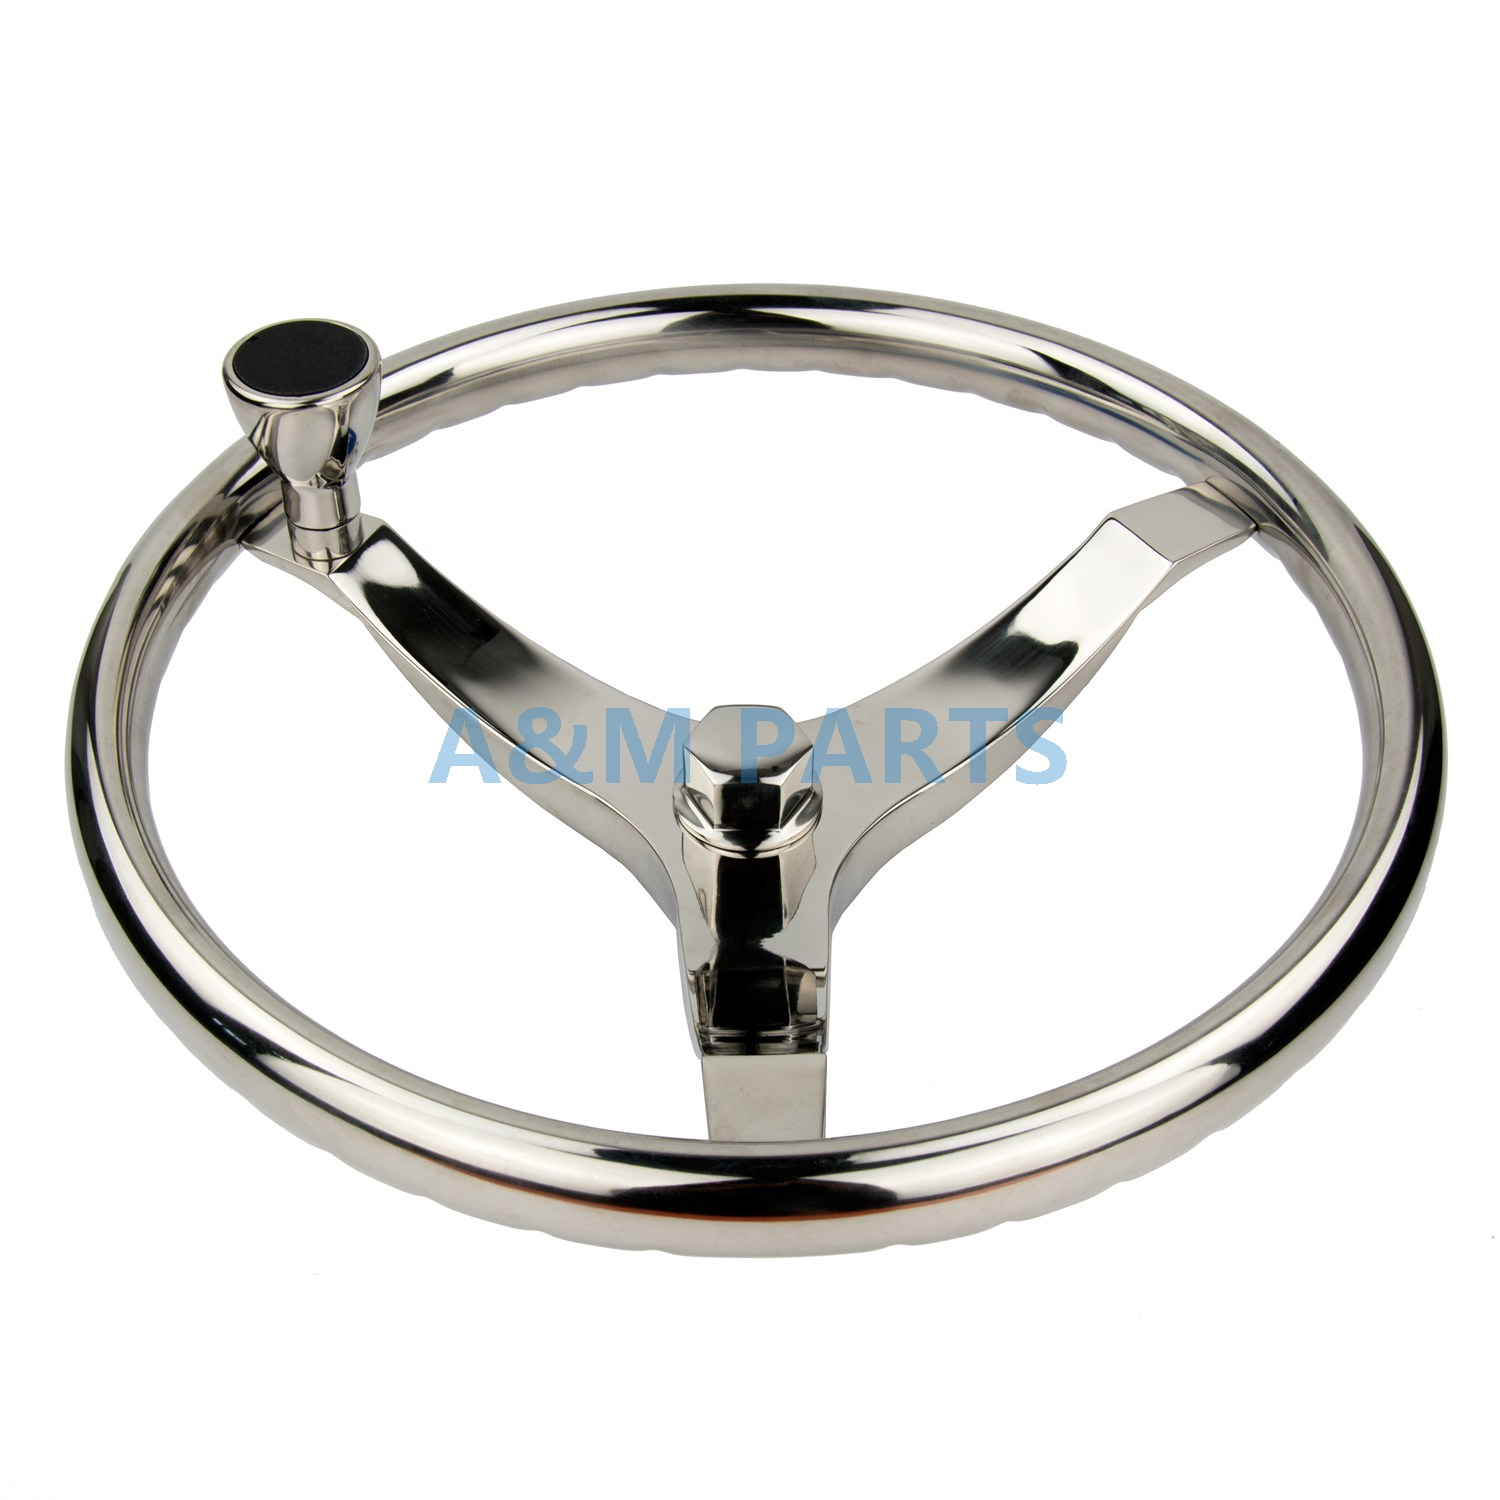 Stainless Steel Marine Boat Steering Wheel Knob for Boats